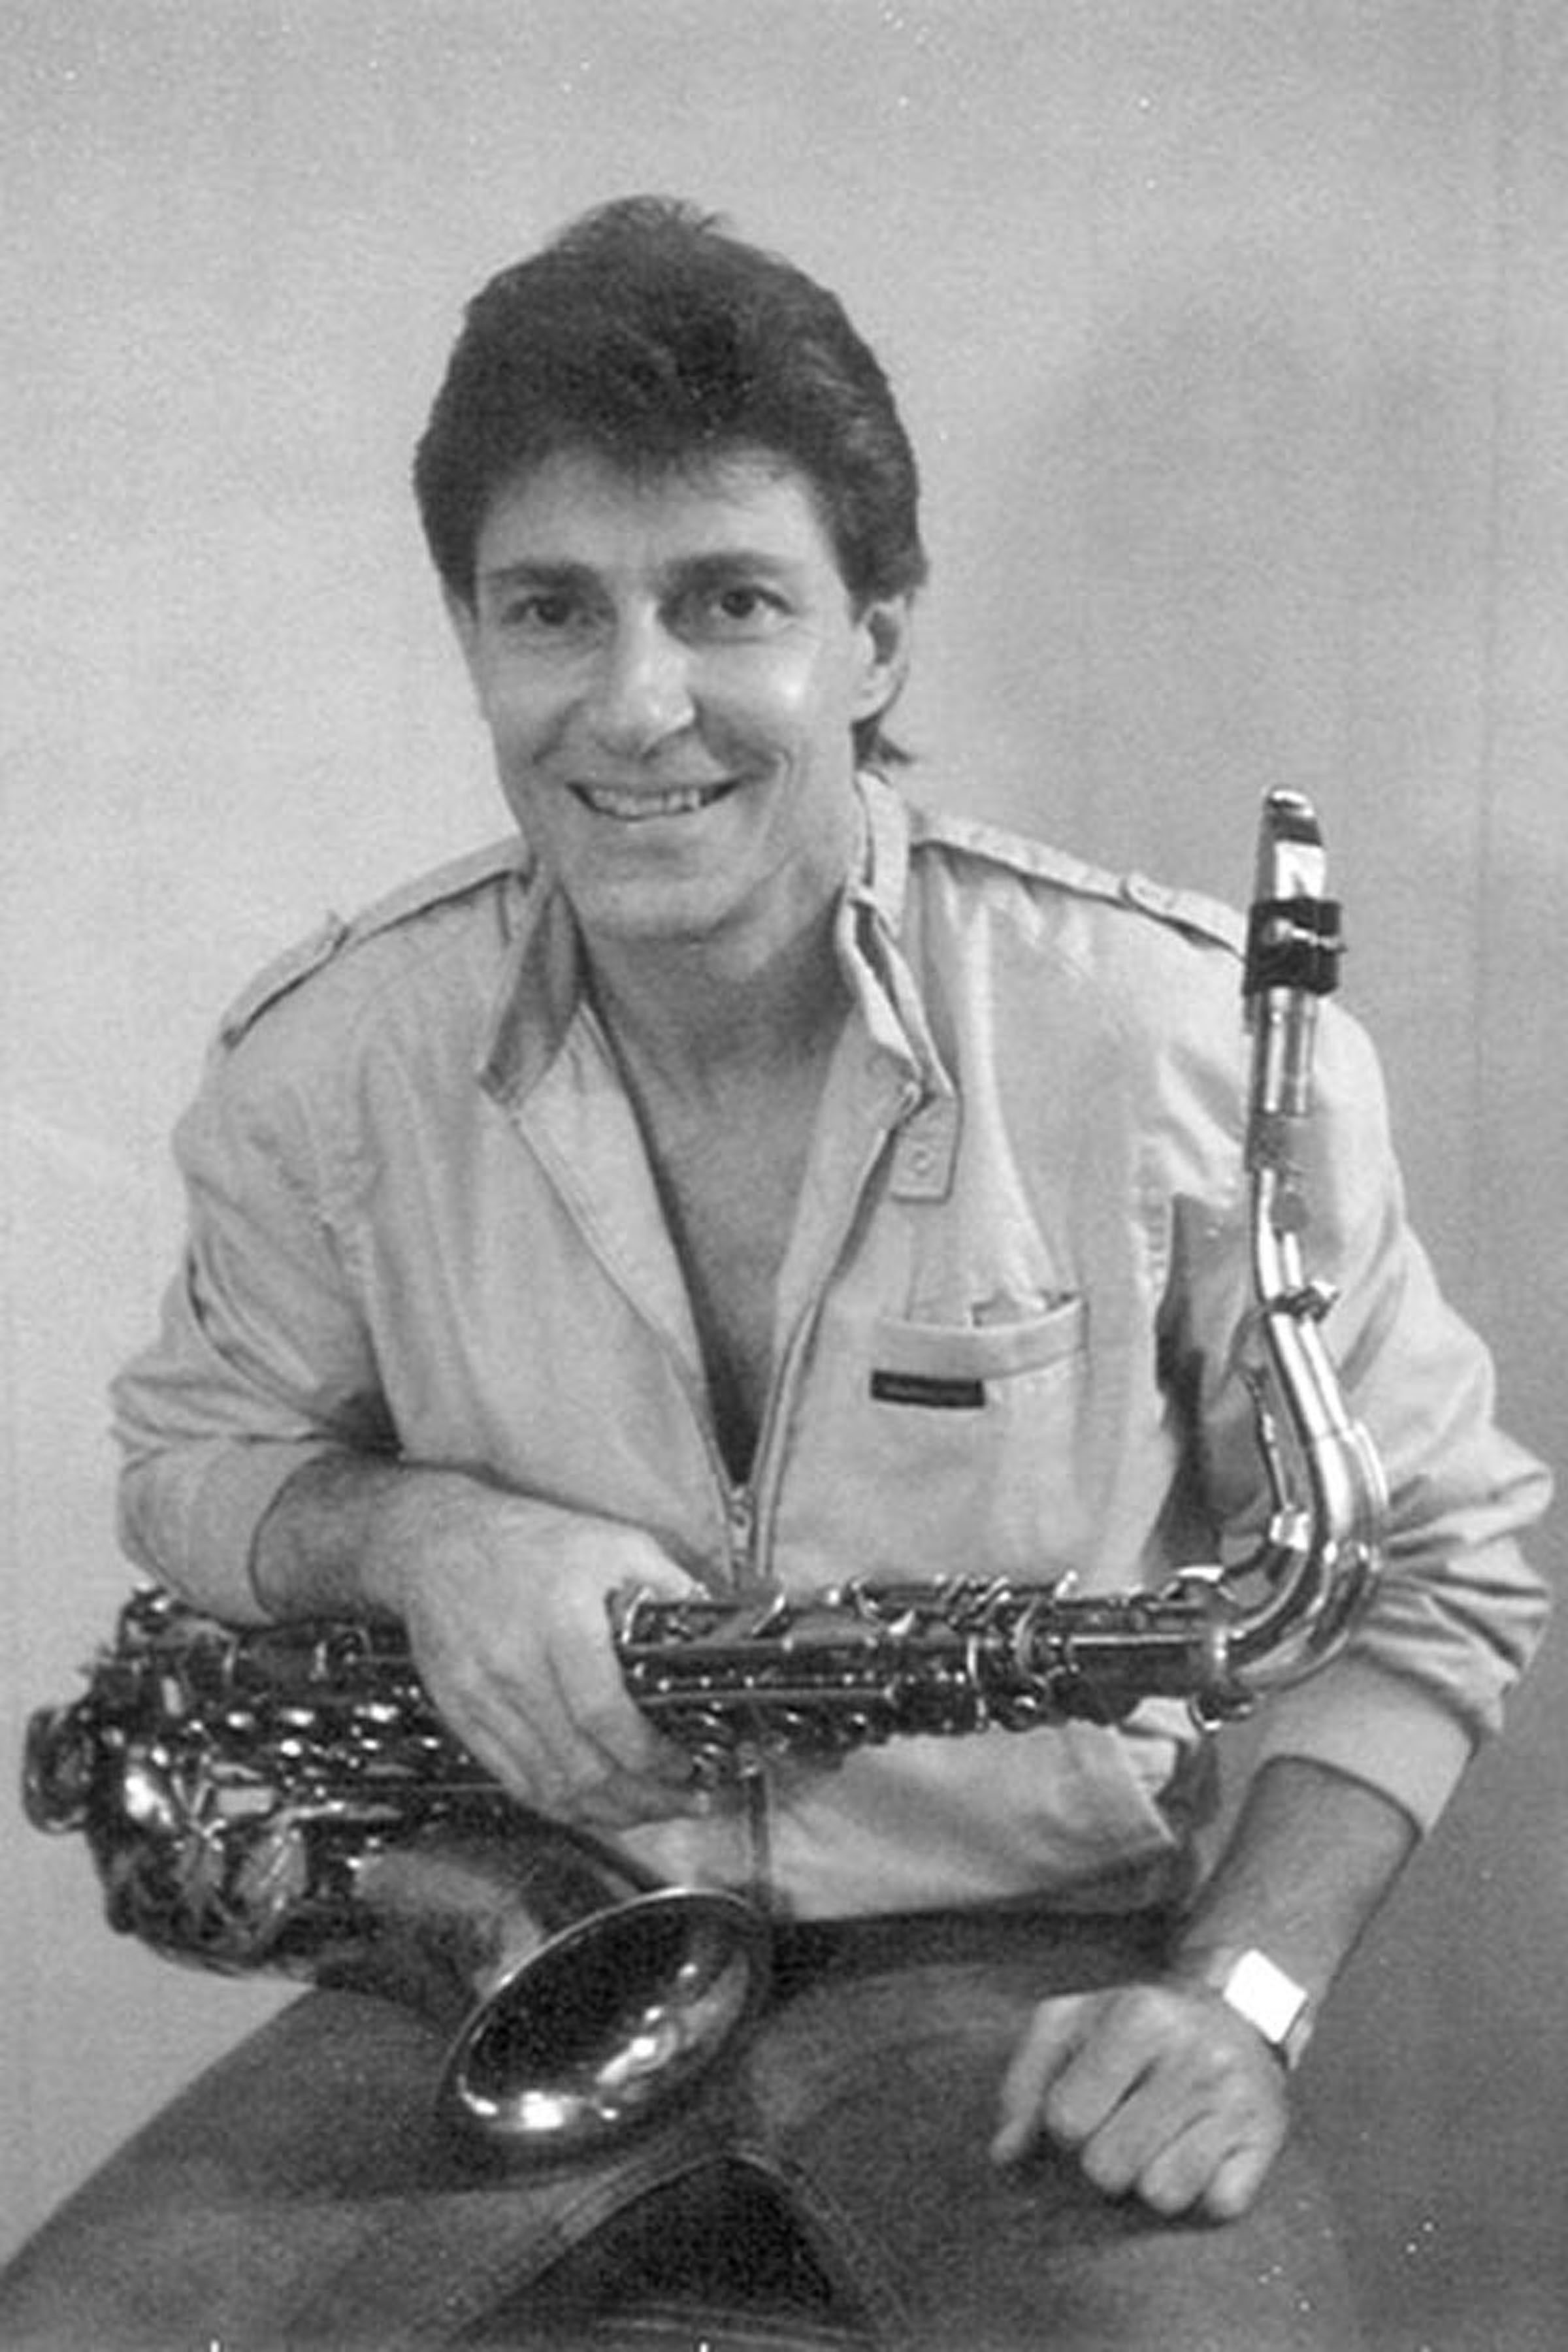 Professional headshot with his tenor sax